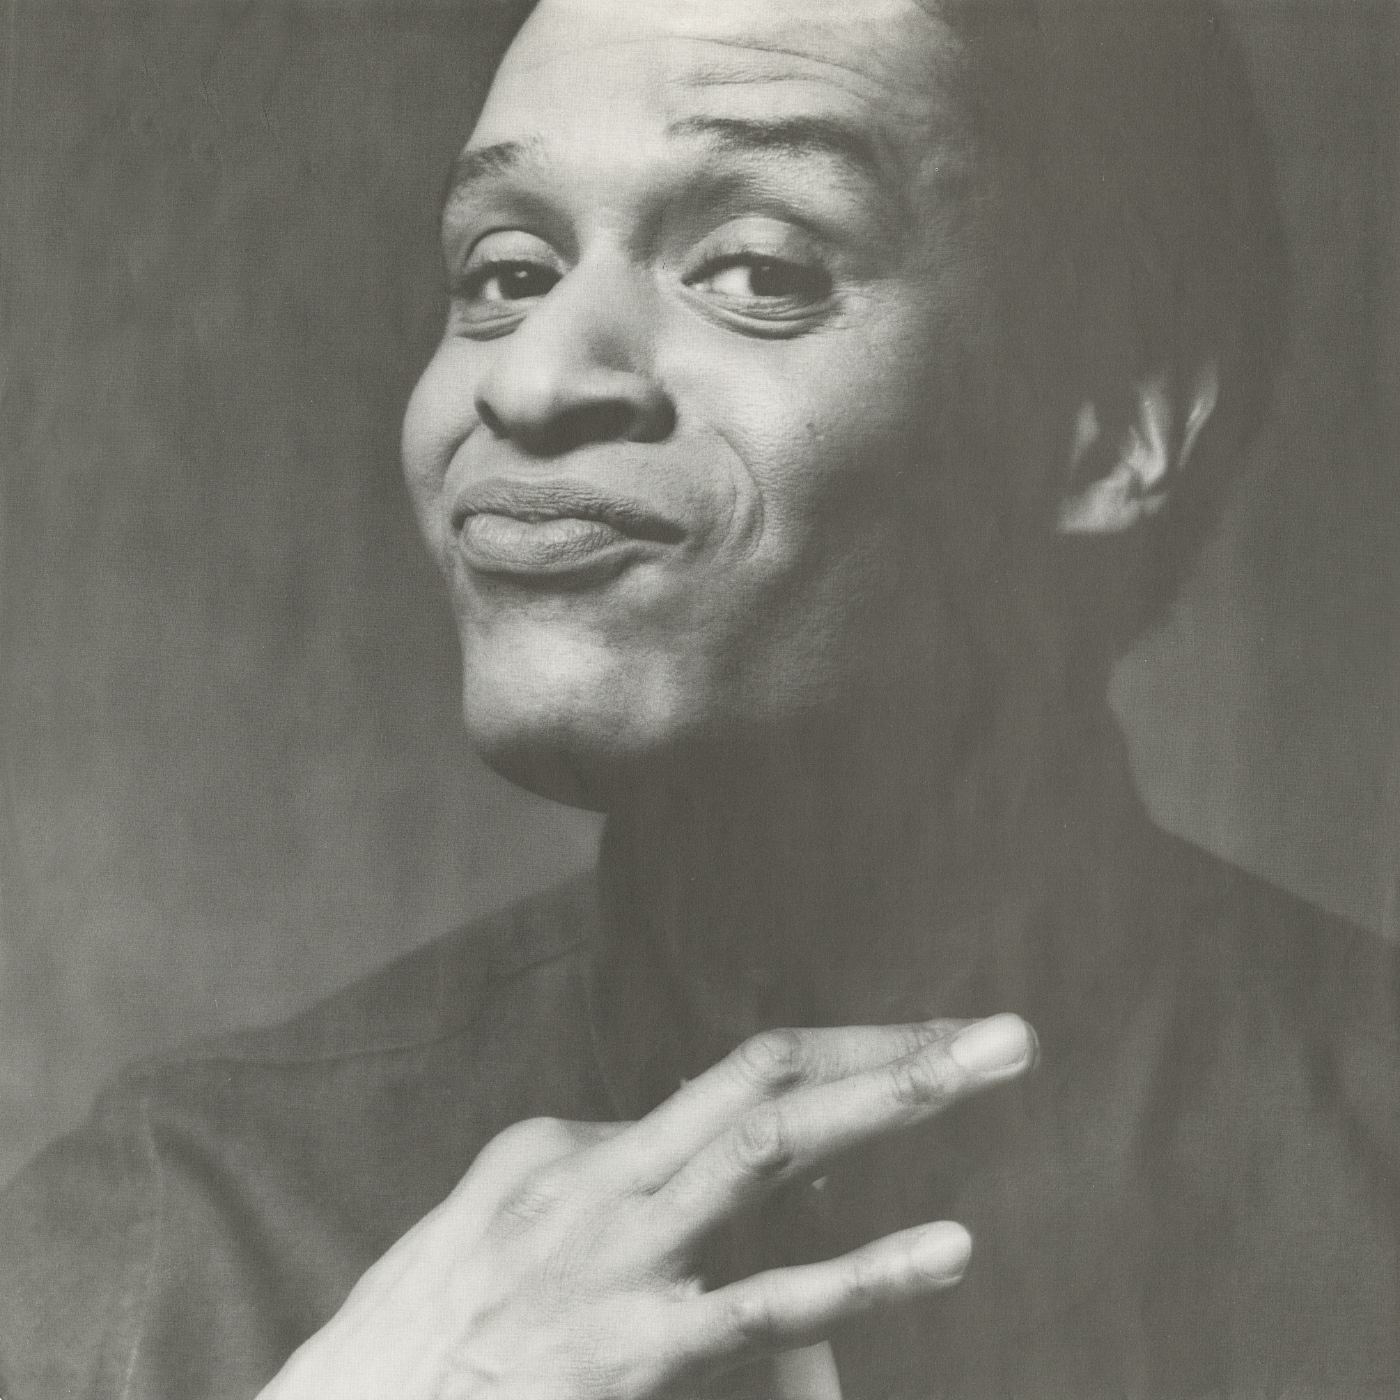 jarreau singles Stream love songs by al jarreau and tens of millions of other songs on all your devices with amazon music unlimited exclusive discount for prime members.